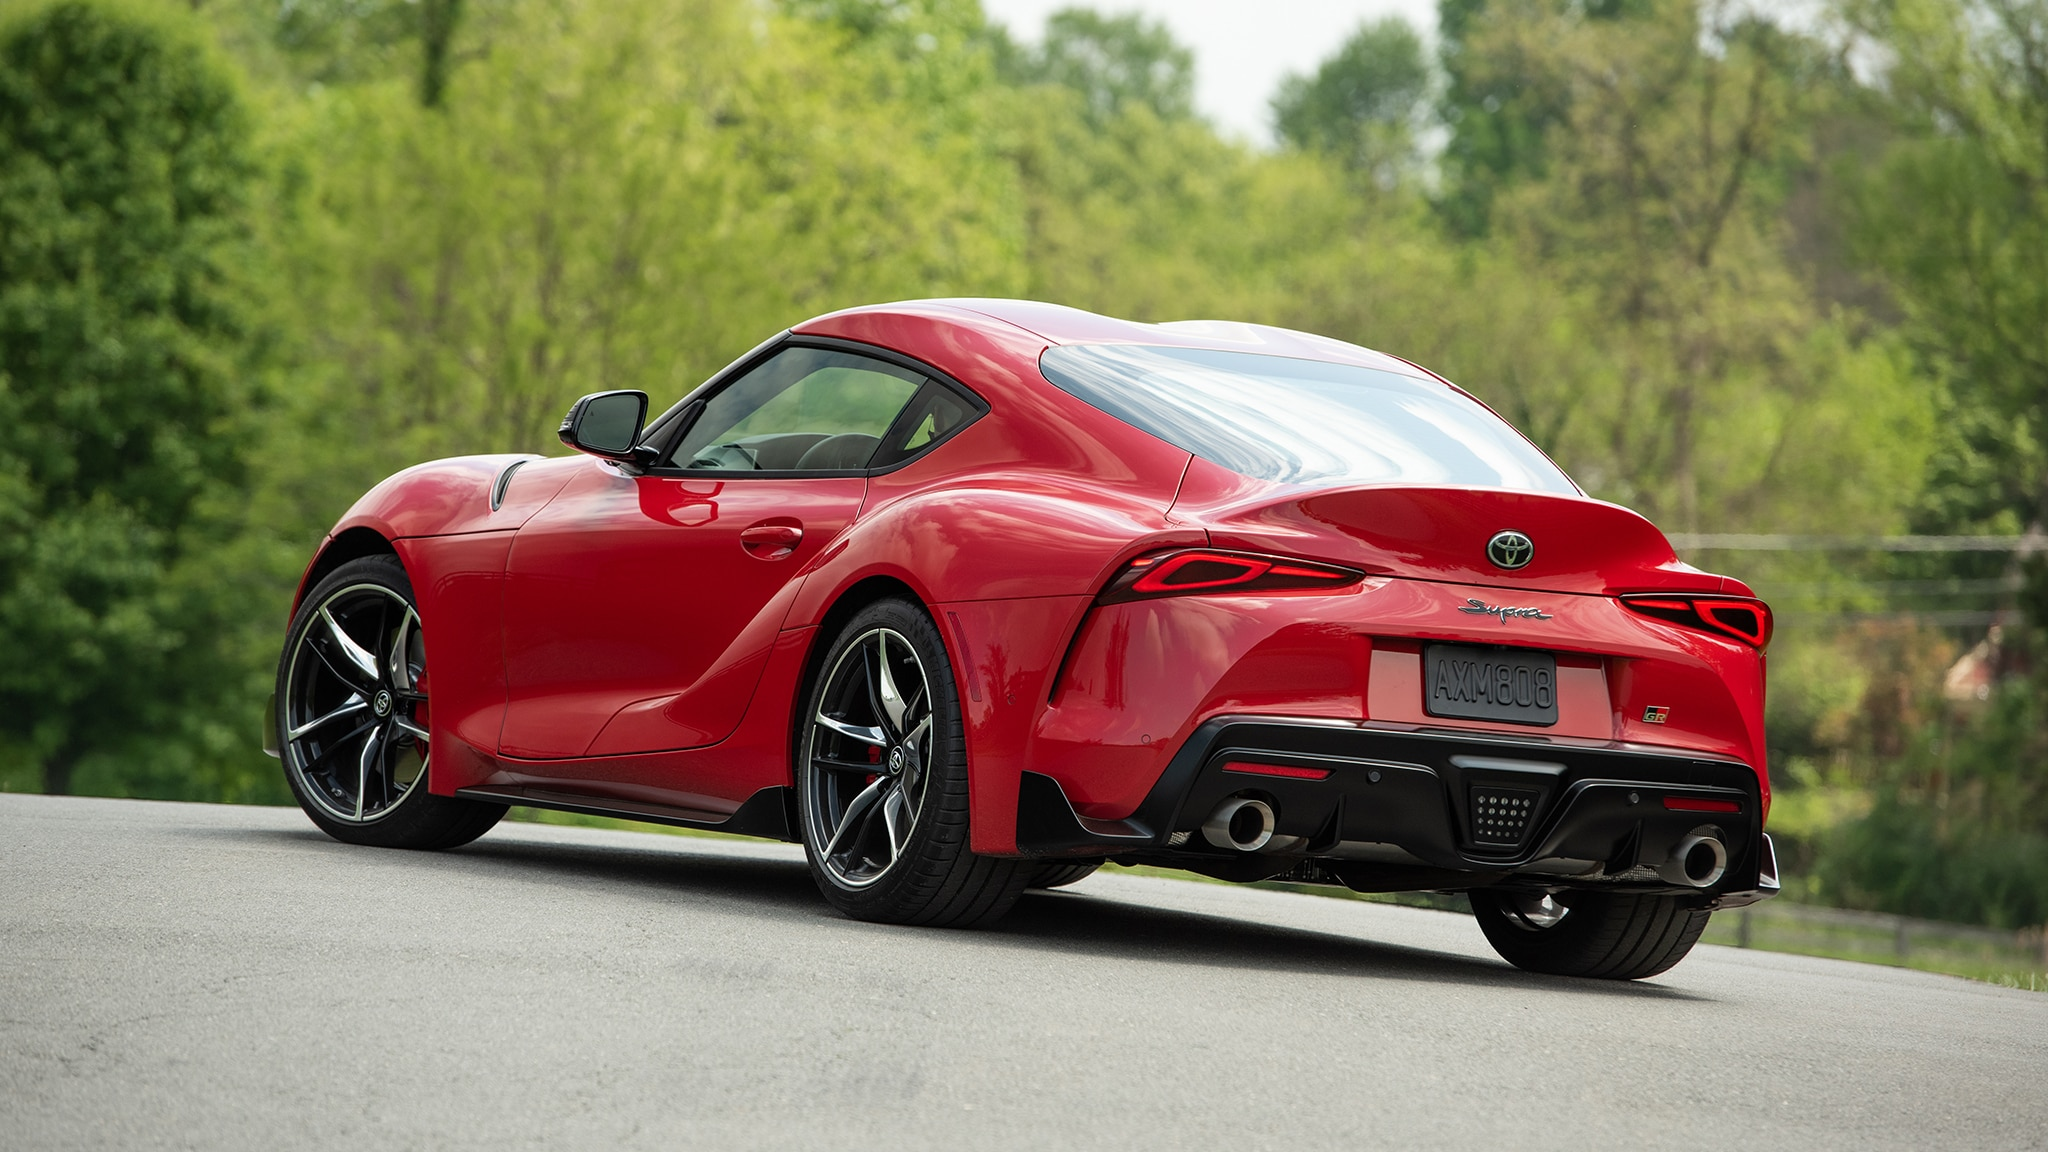 2020 Toyota Supra First Drive Review: It's as Real as It